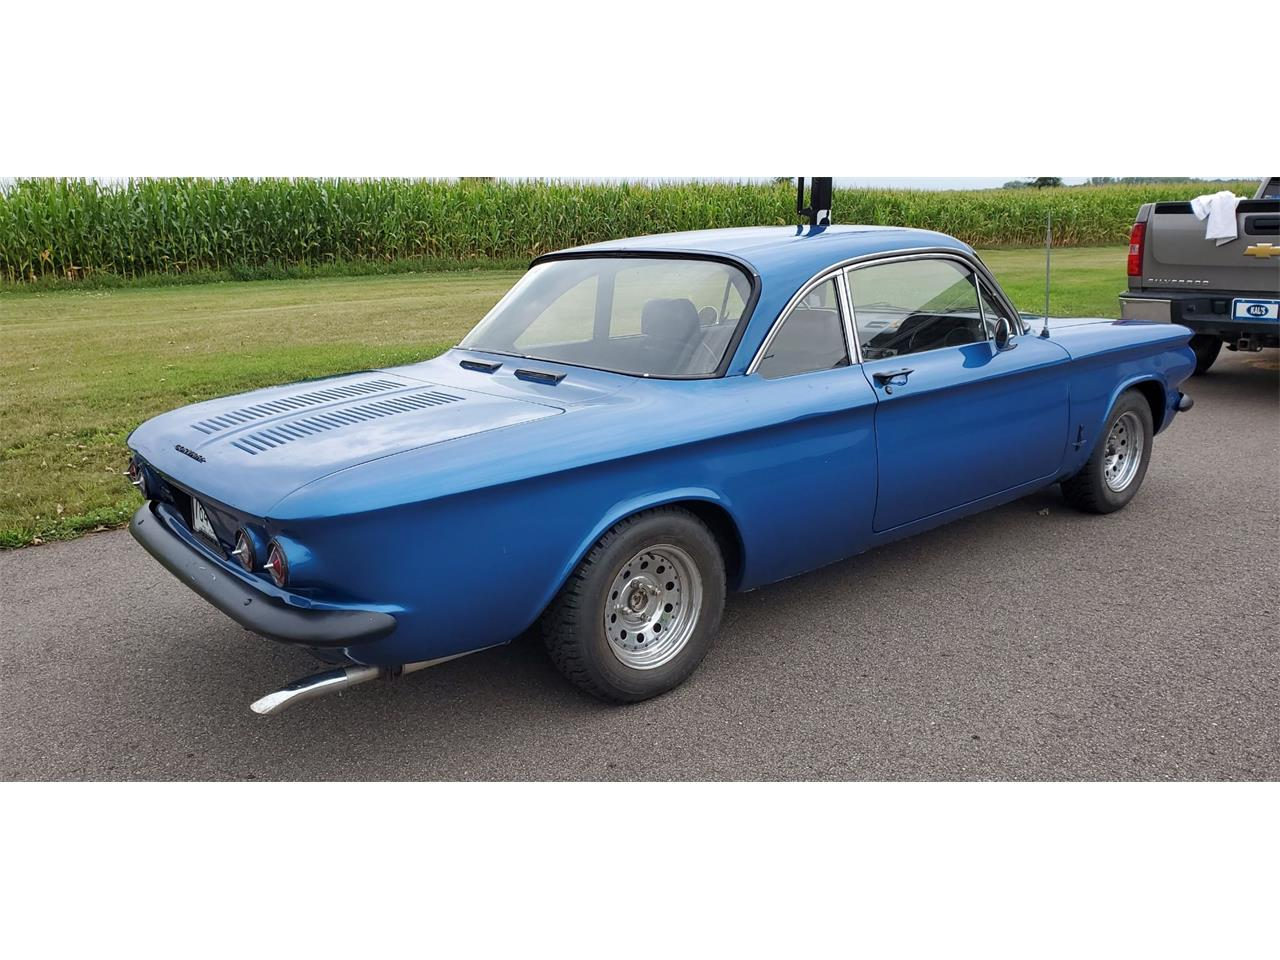 Large Picture of '63 Corvair Monza - QS2X